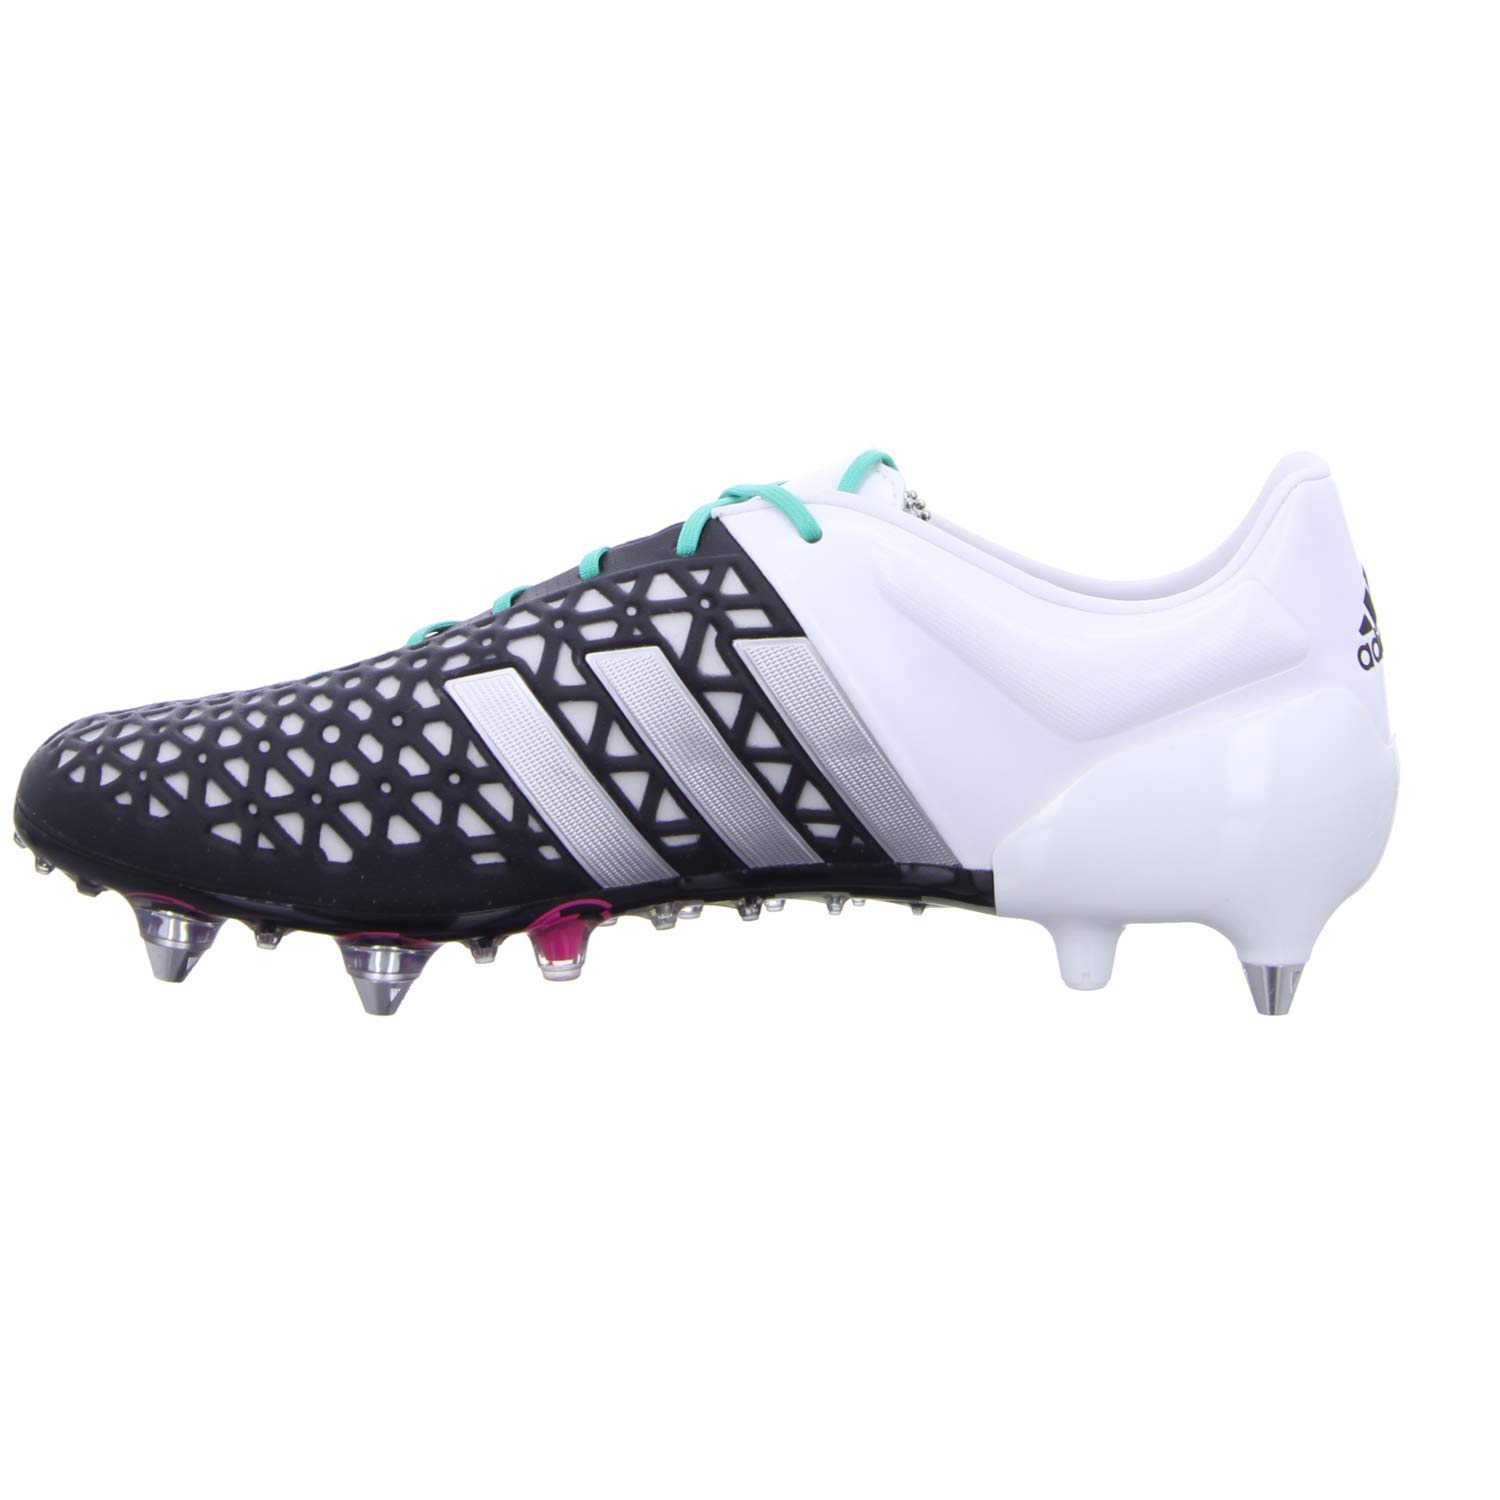 De Football Ace Adidas SgChaussures Homme 15 1 mwOvn0N8